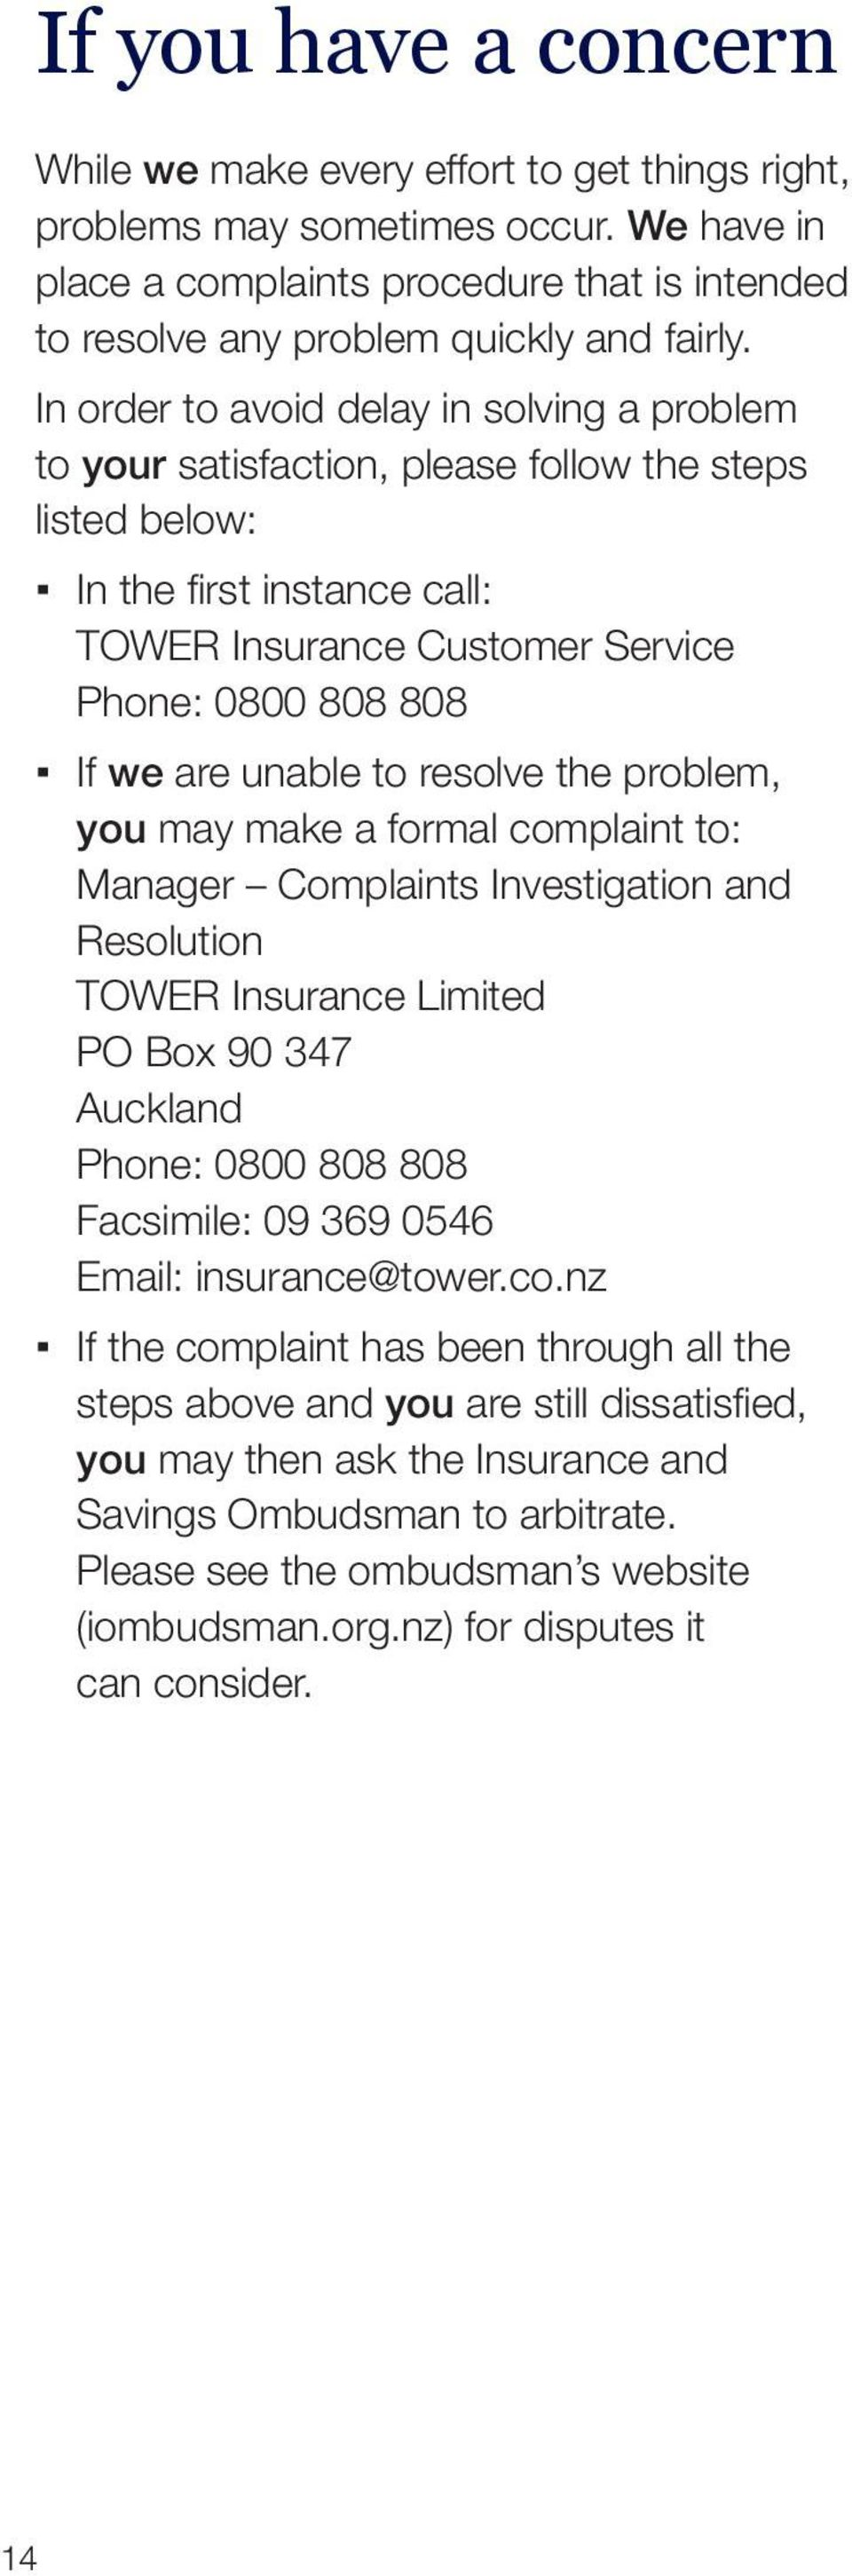 unable to resolve the problem, you may make a formal complaint to: Manager Complaints Investigation and Resolution TOWER Insurance Limited PO Box 90 347 Auckland Phone: 0800 808 808 Facsimile: 09 369